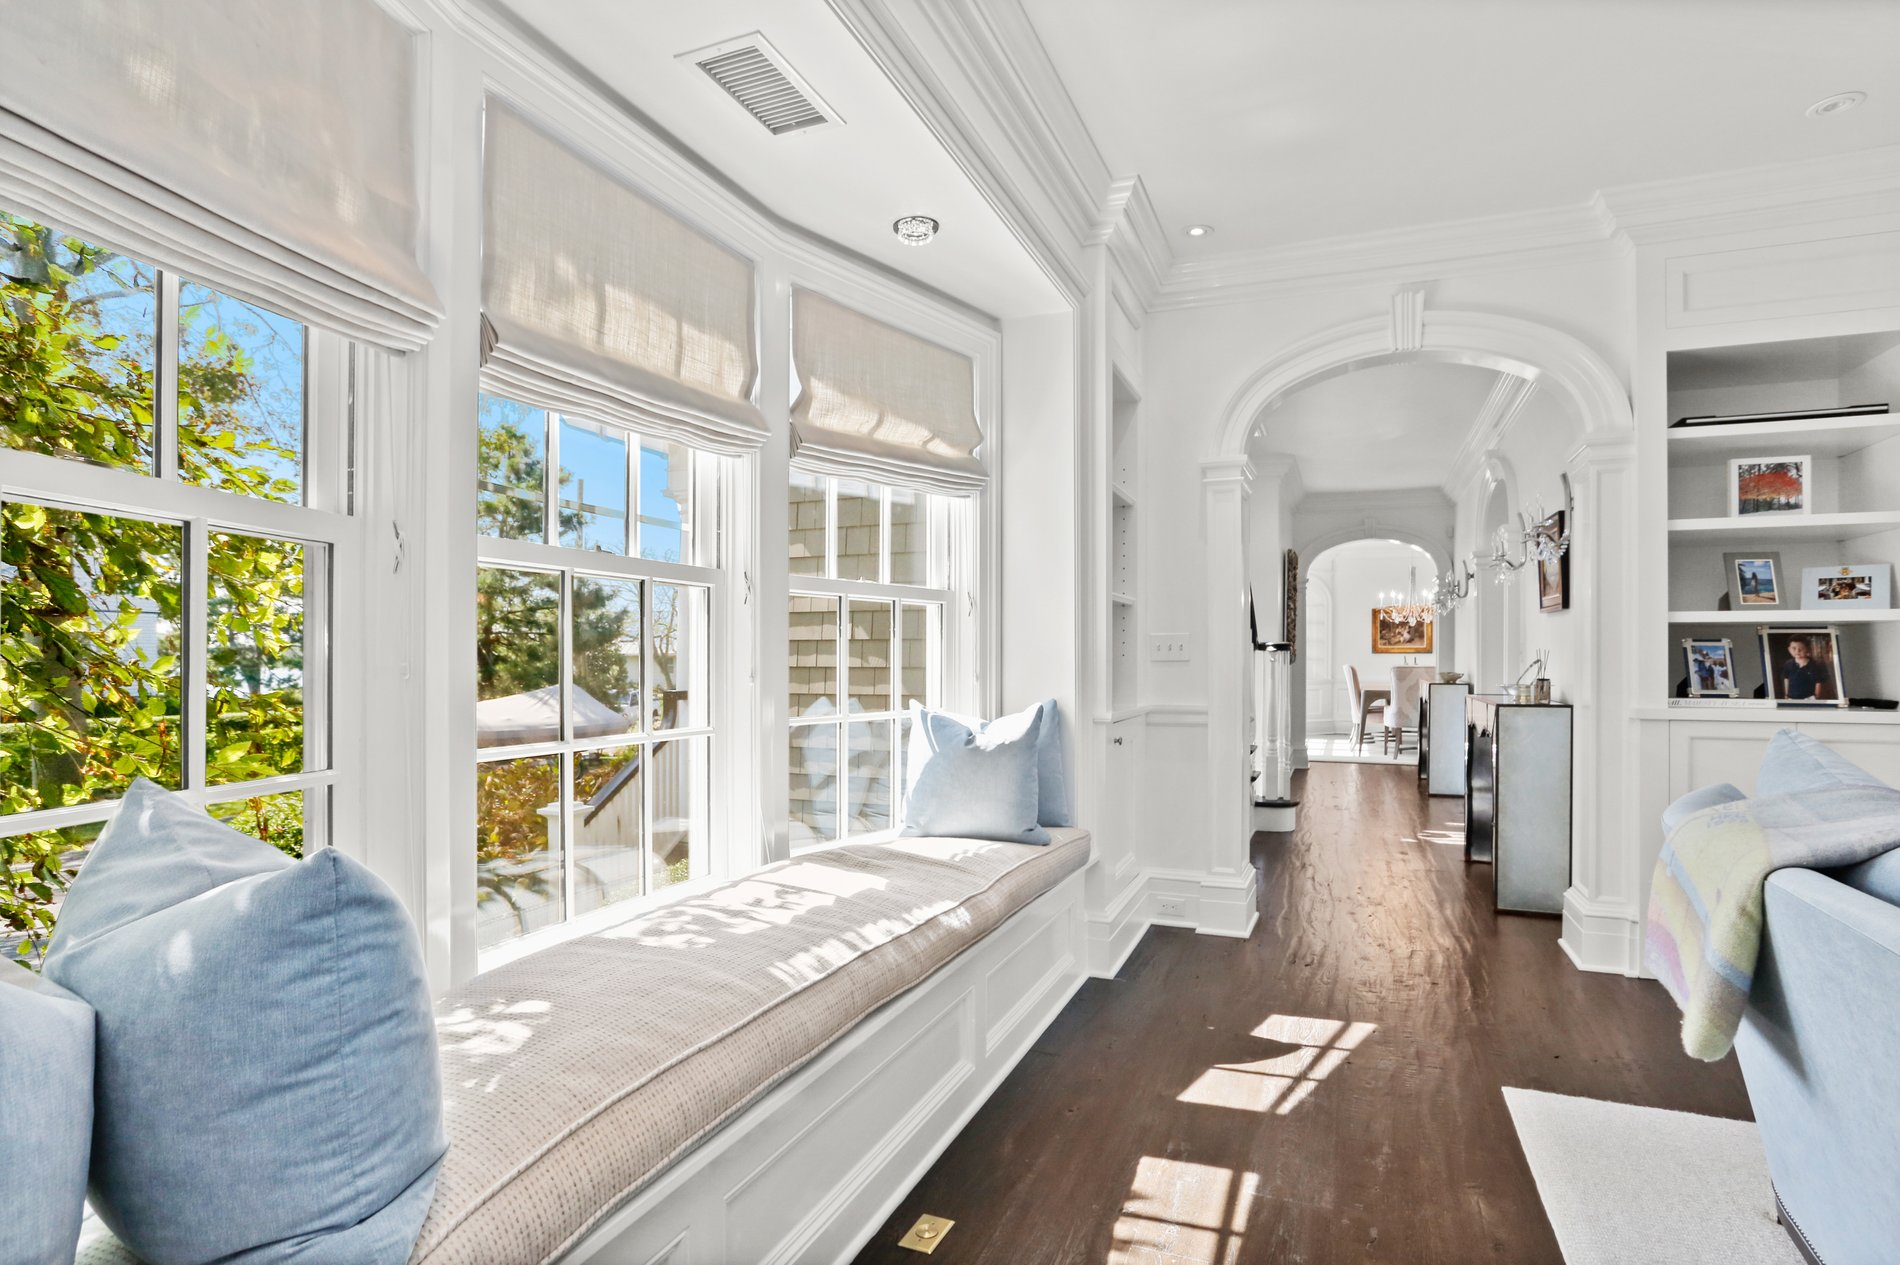 Beautiful white living room with a bay window featuring a plush cushion seat and pale blue throw pillows.